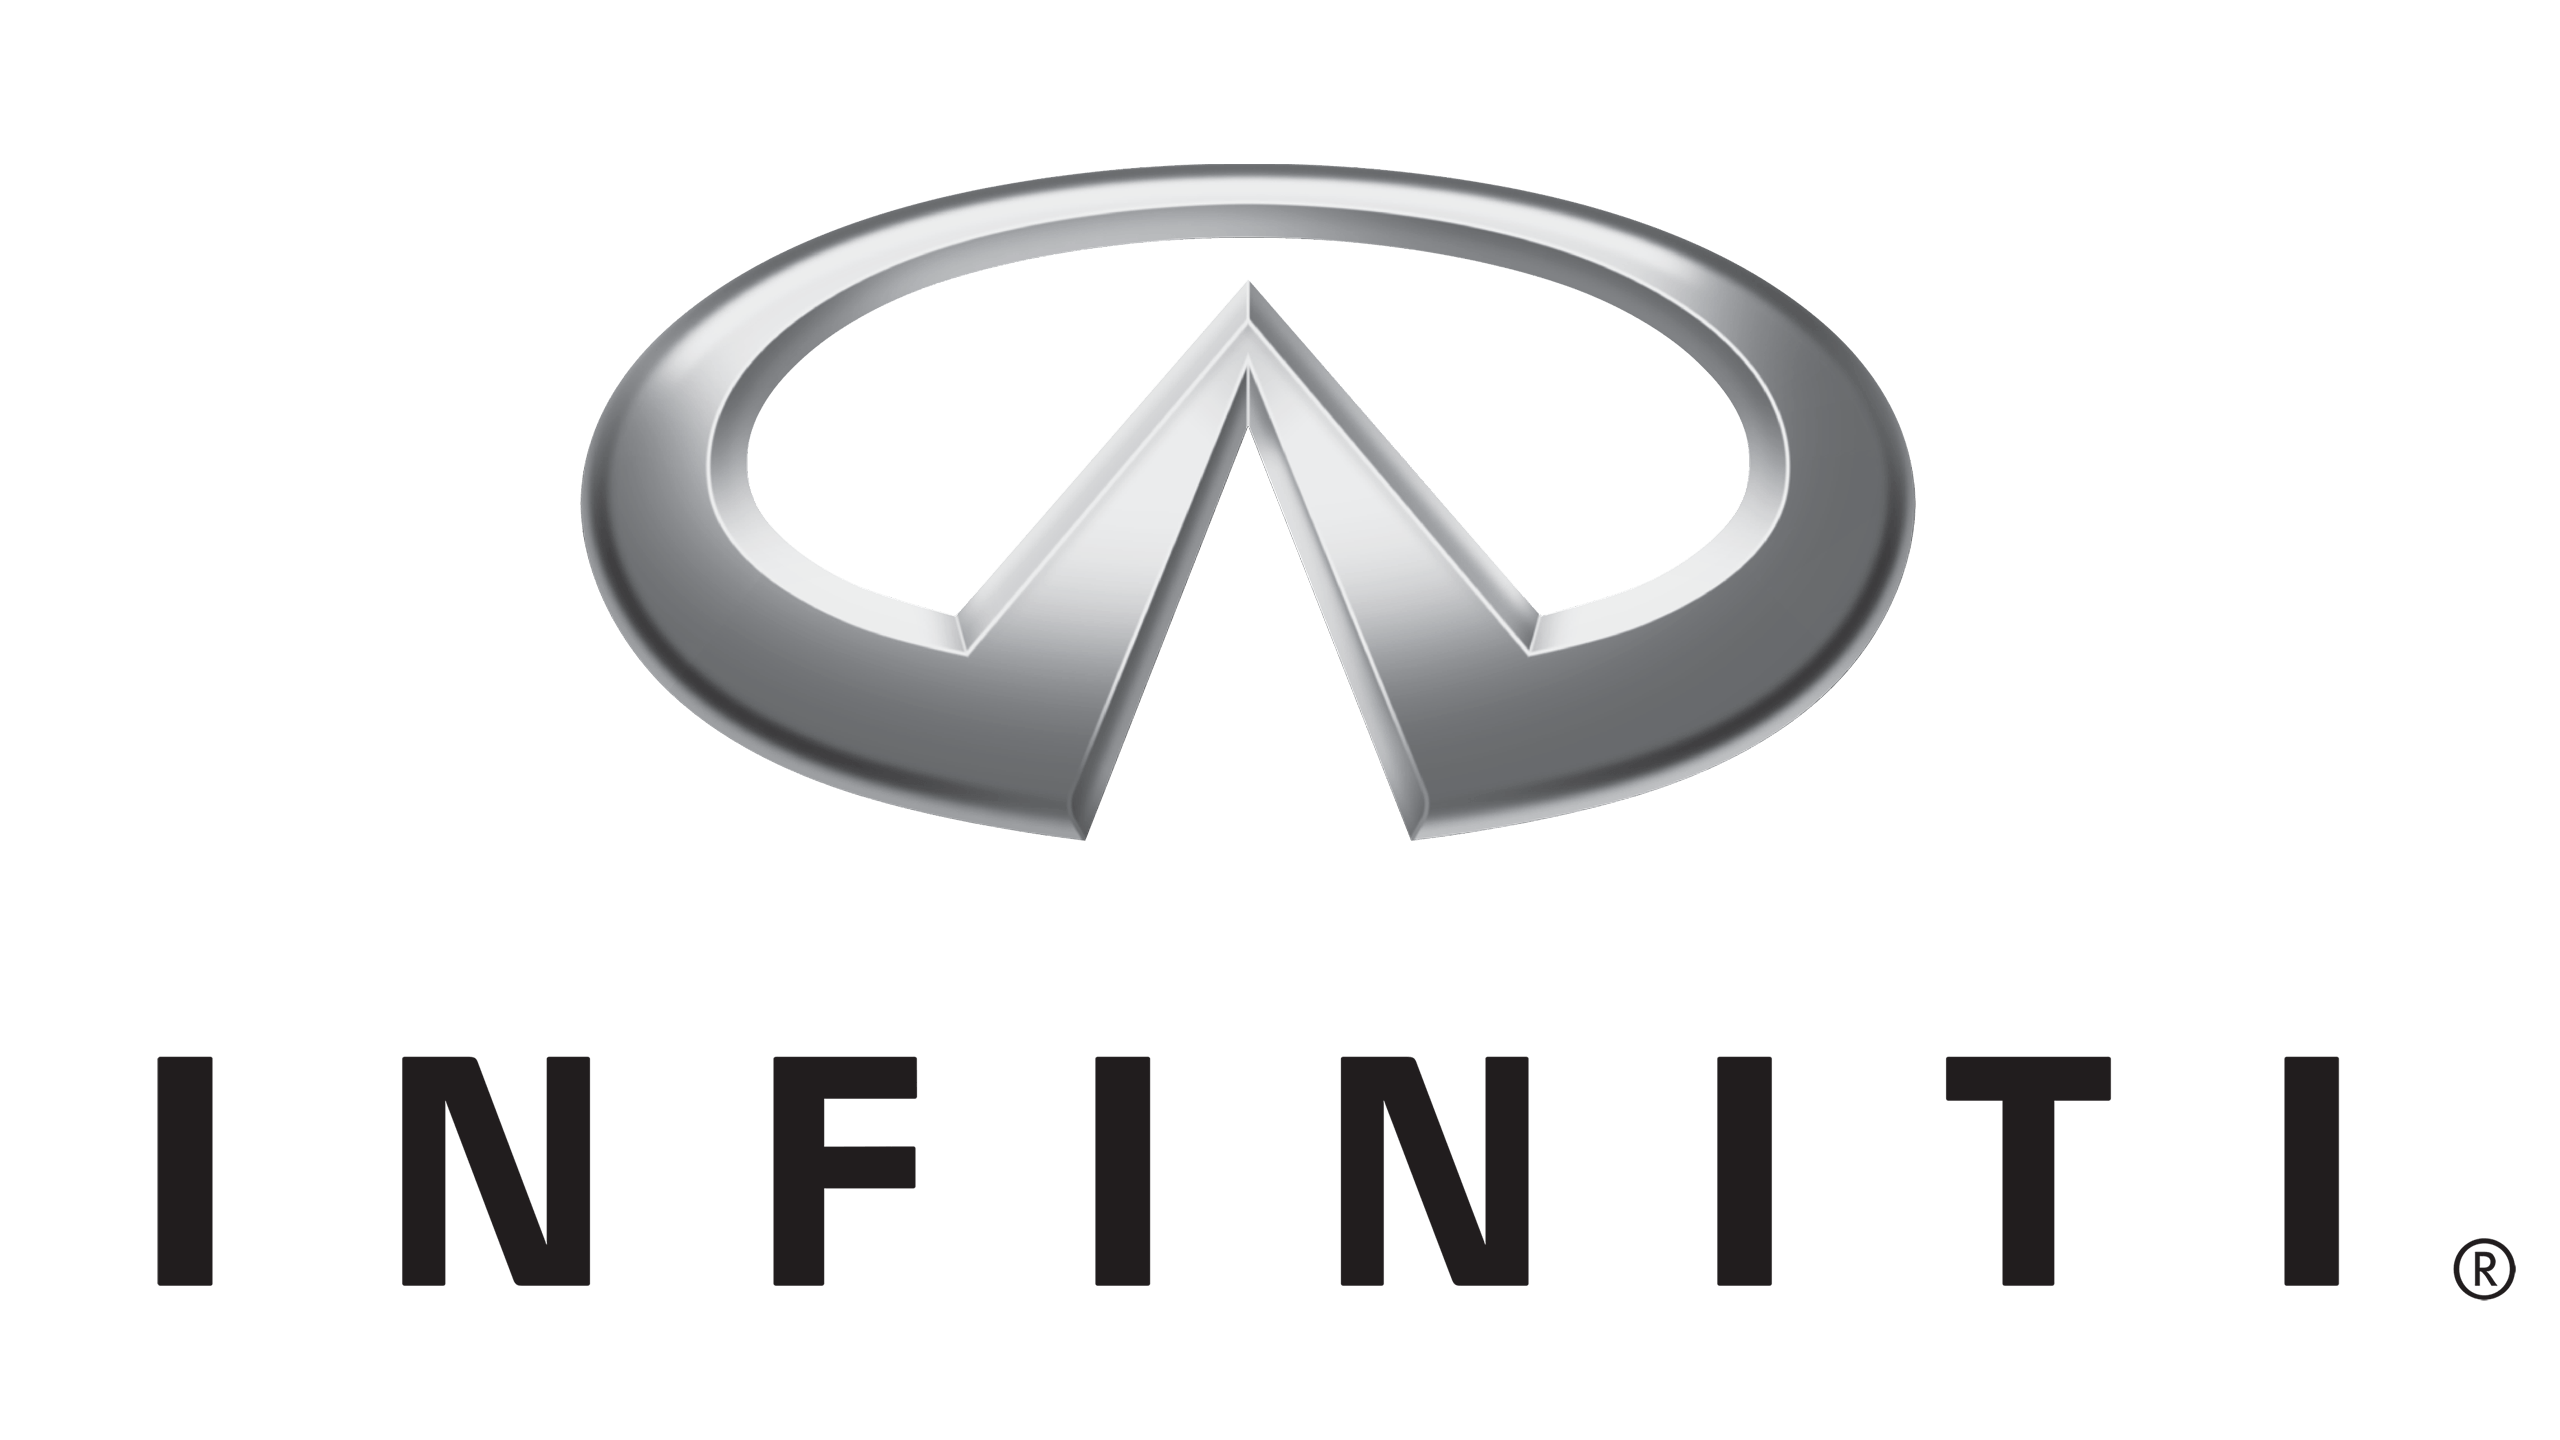 Car Logo Infiniti transparent PNG.